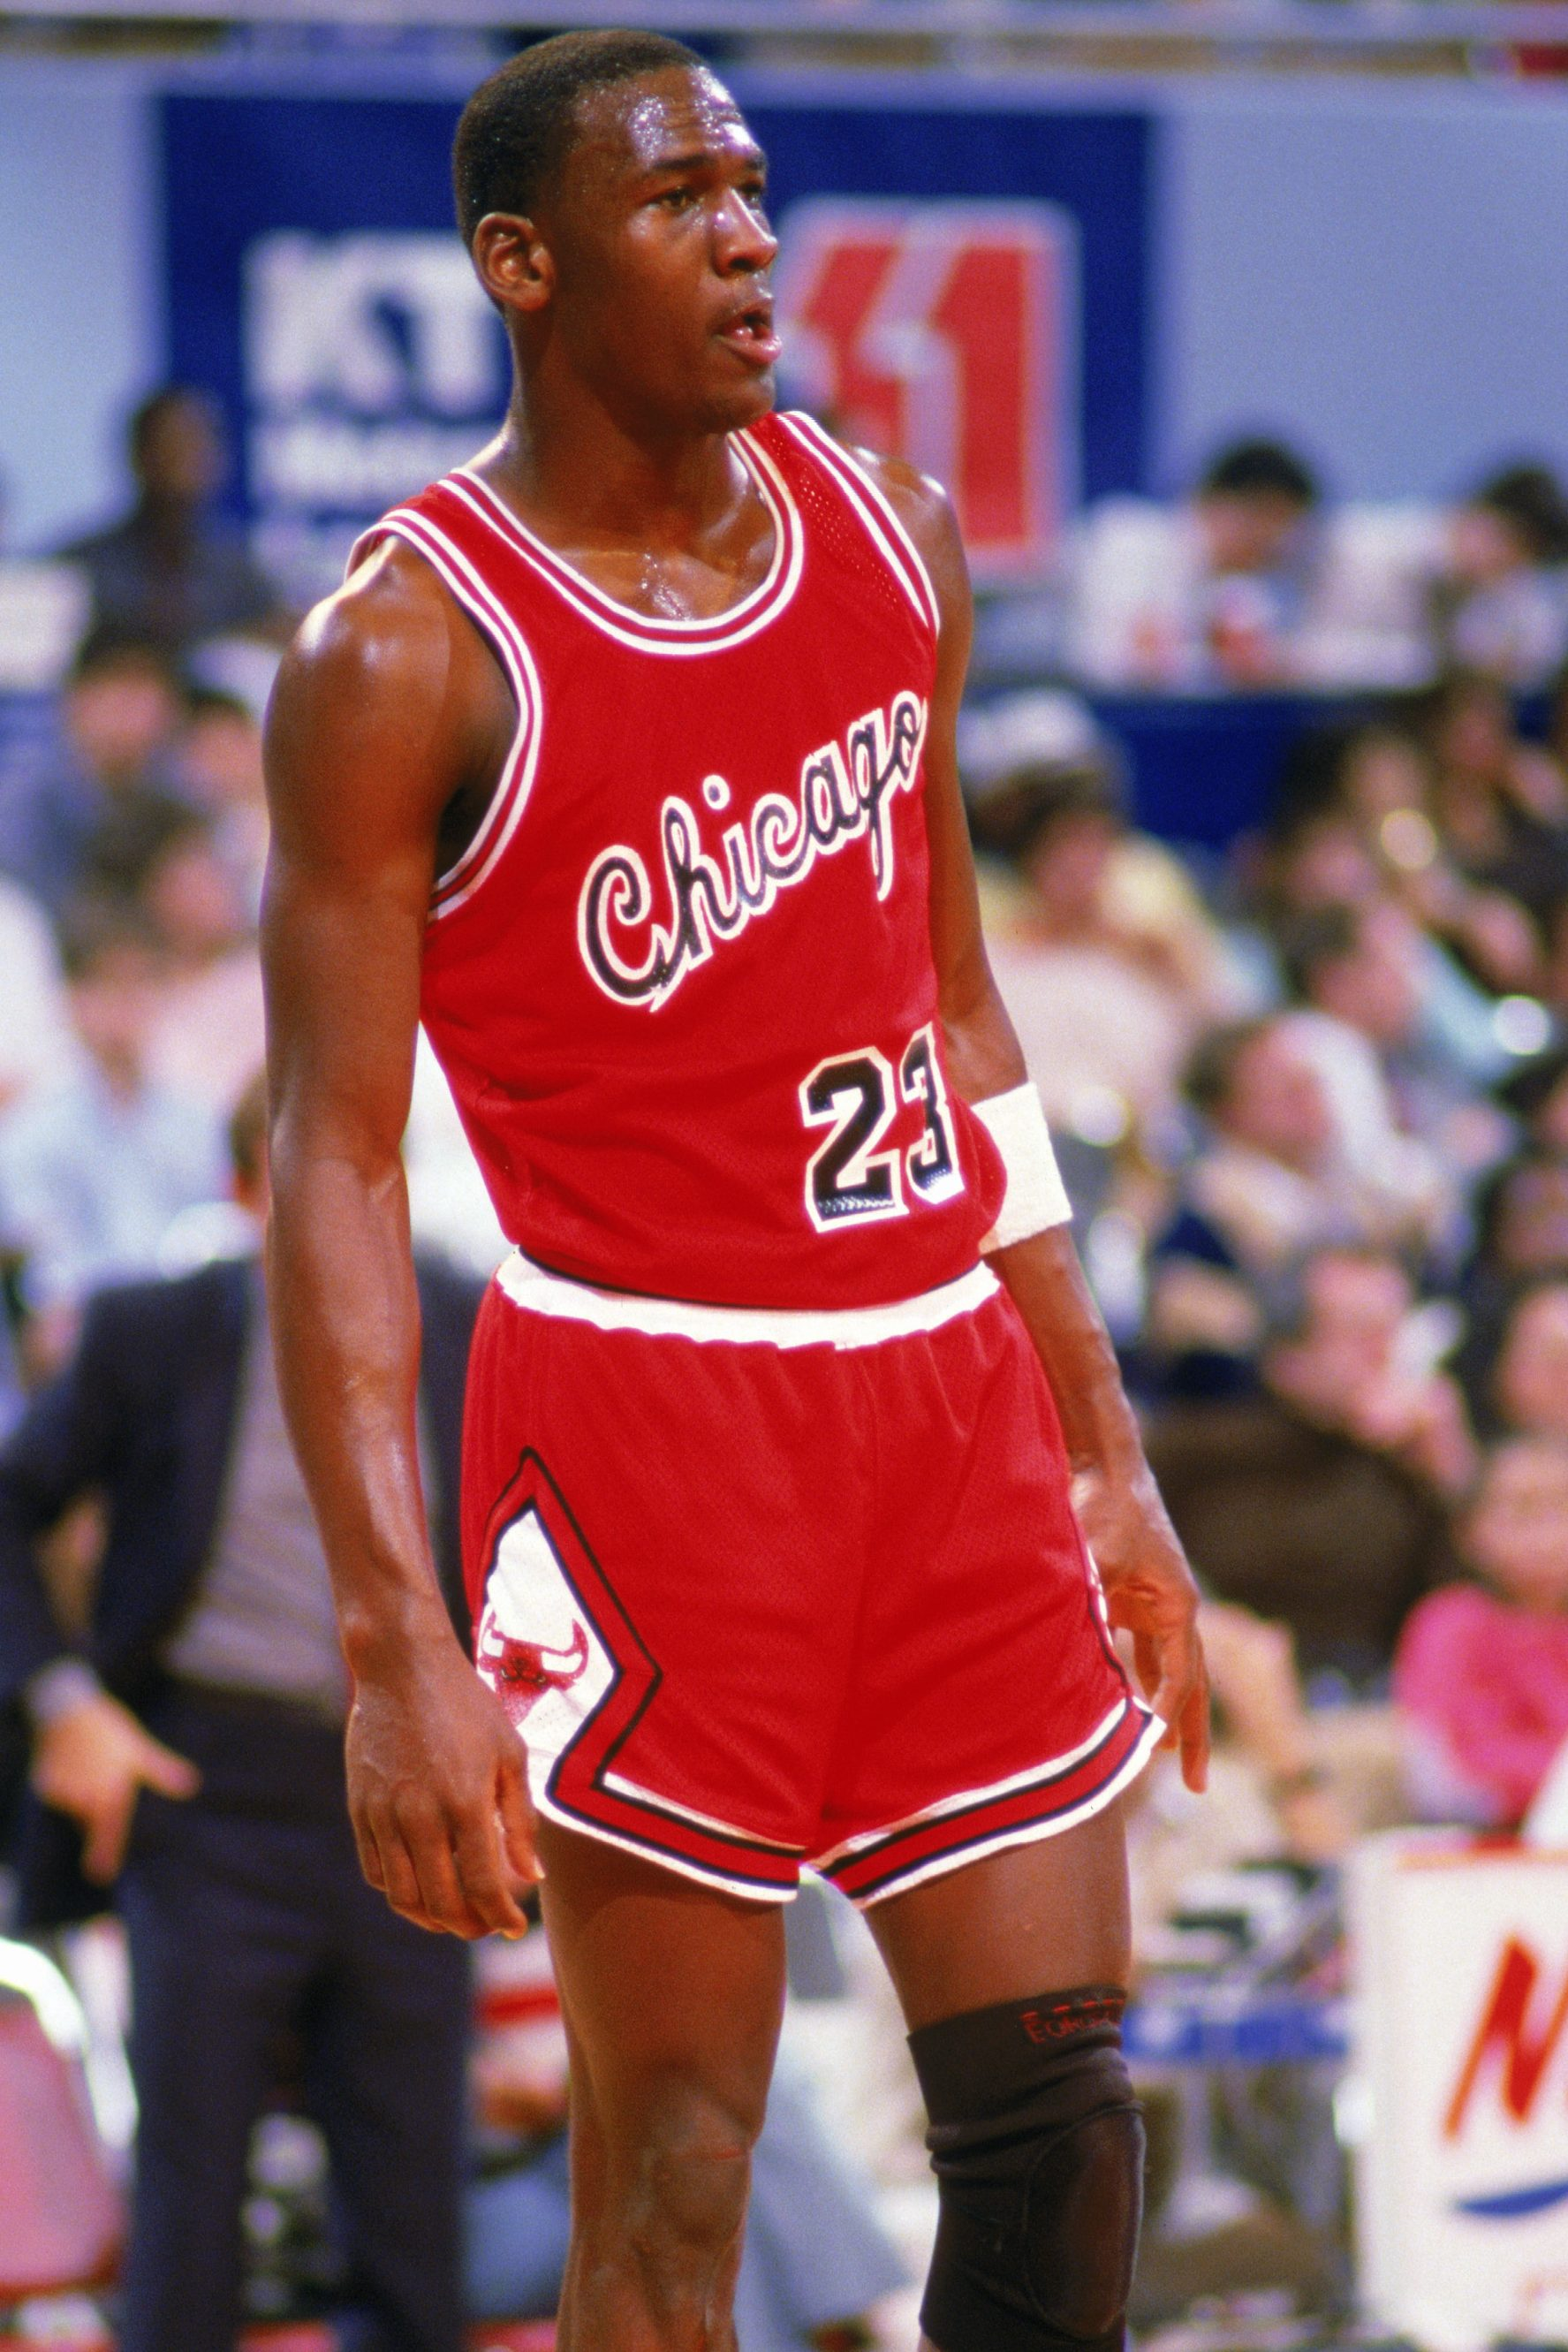 timeless design d90af d1fb3 Michael Jordan (No. 23) of the Chicago Bulls stands on the court moves the  ball at the perimeter against the Los Angeles Clippers at the Sports Arena  in Los ...